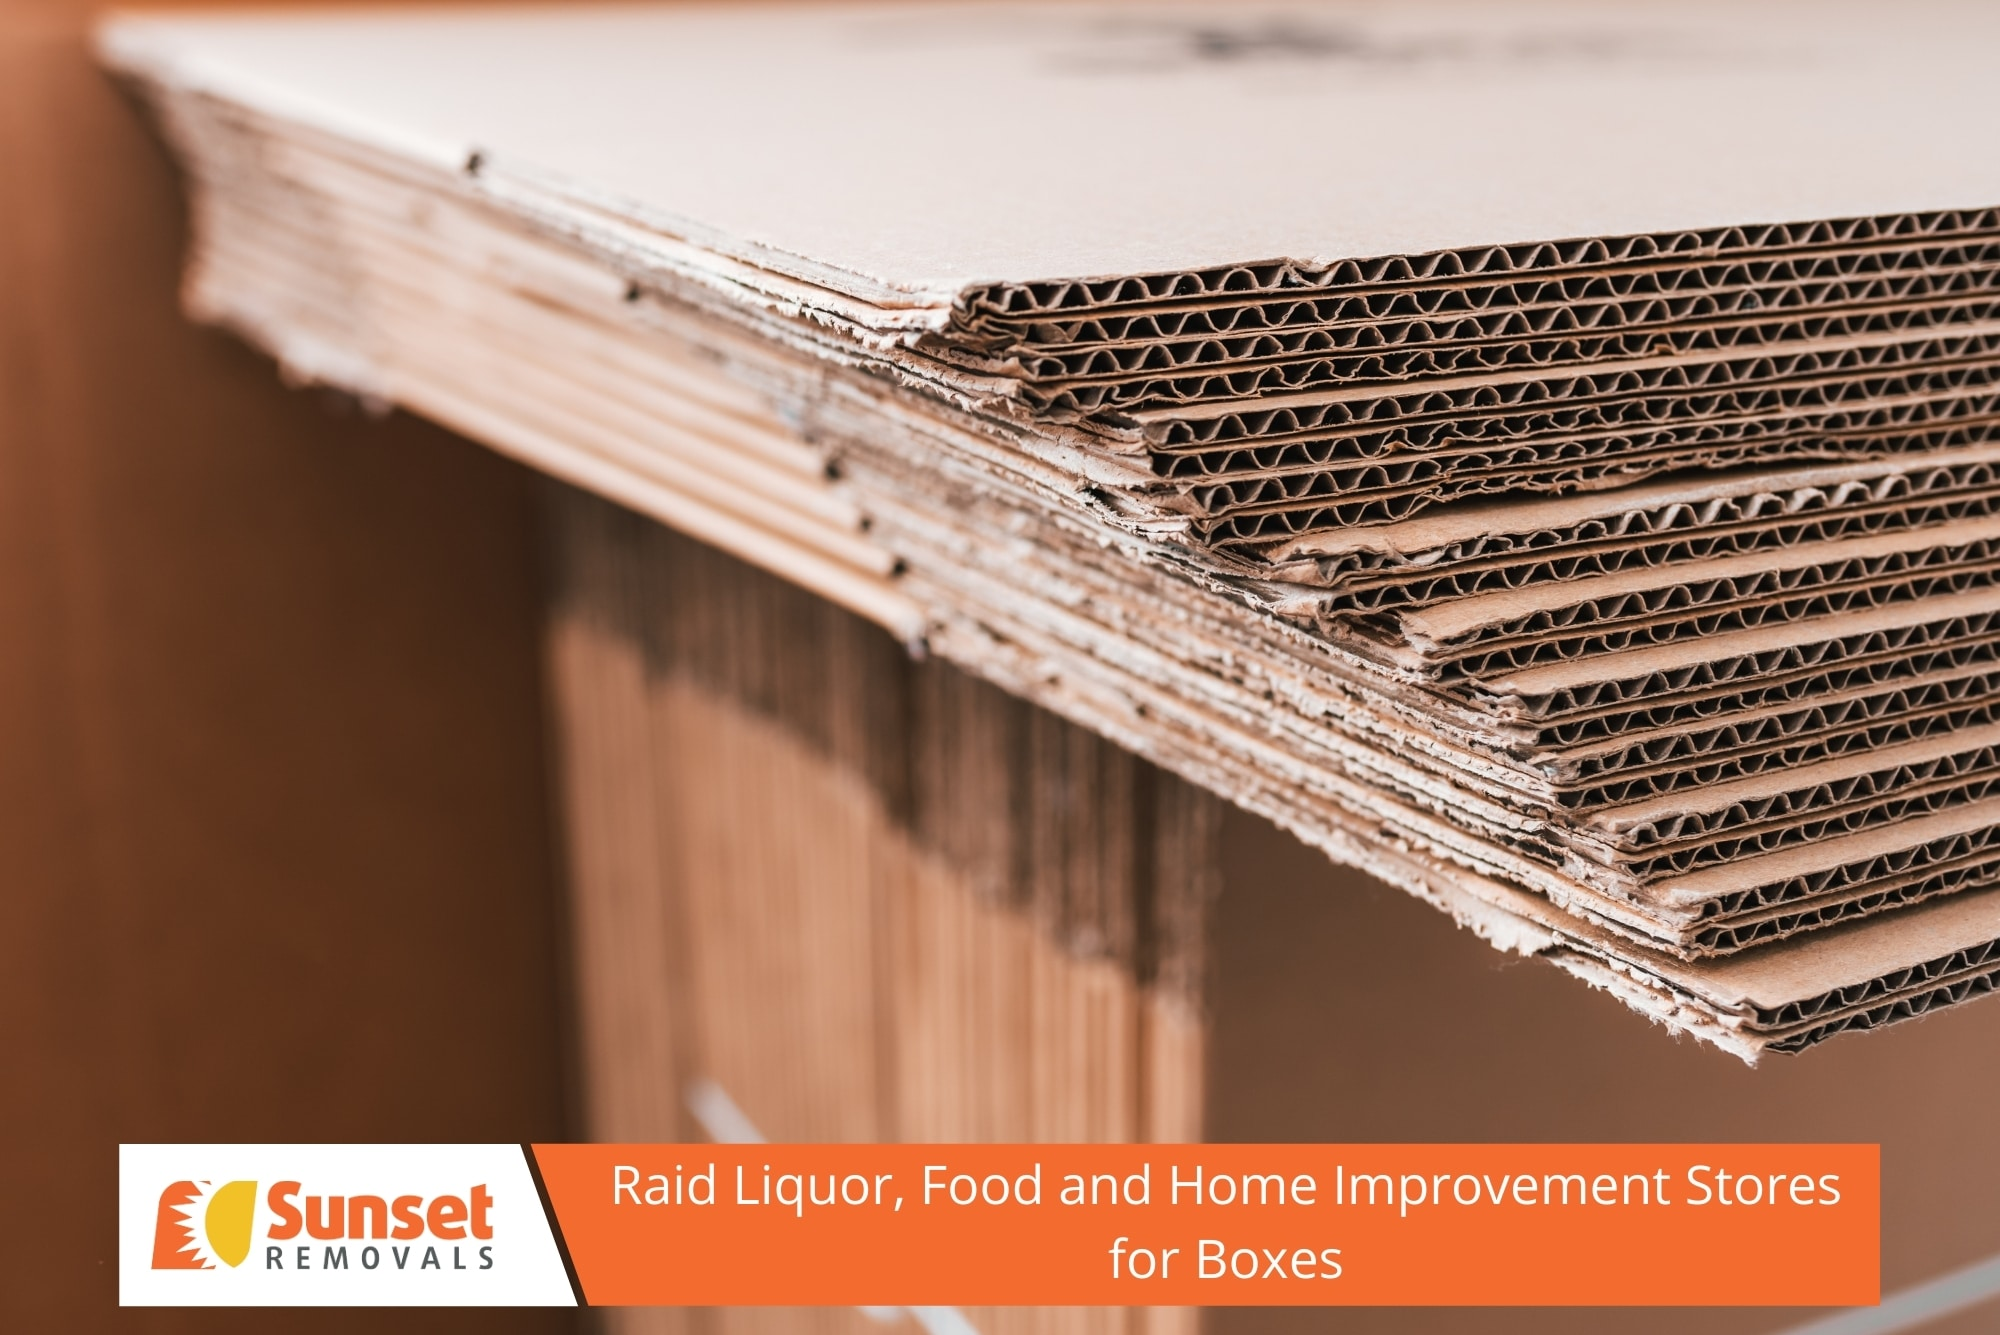 Raid Liquor, Food and Home Improvement Stores for Boxes